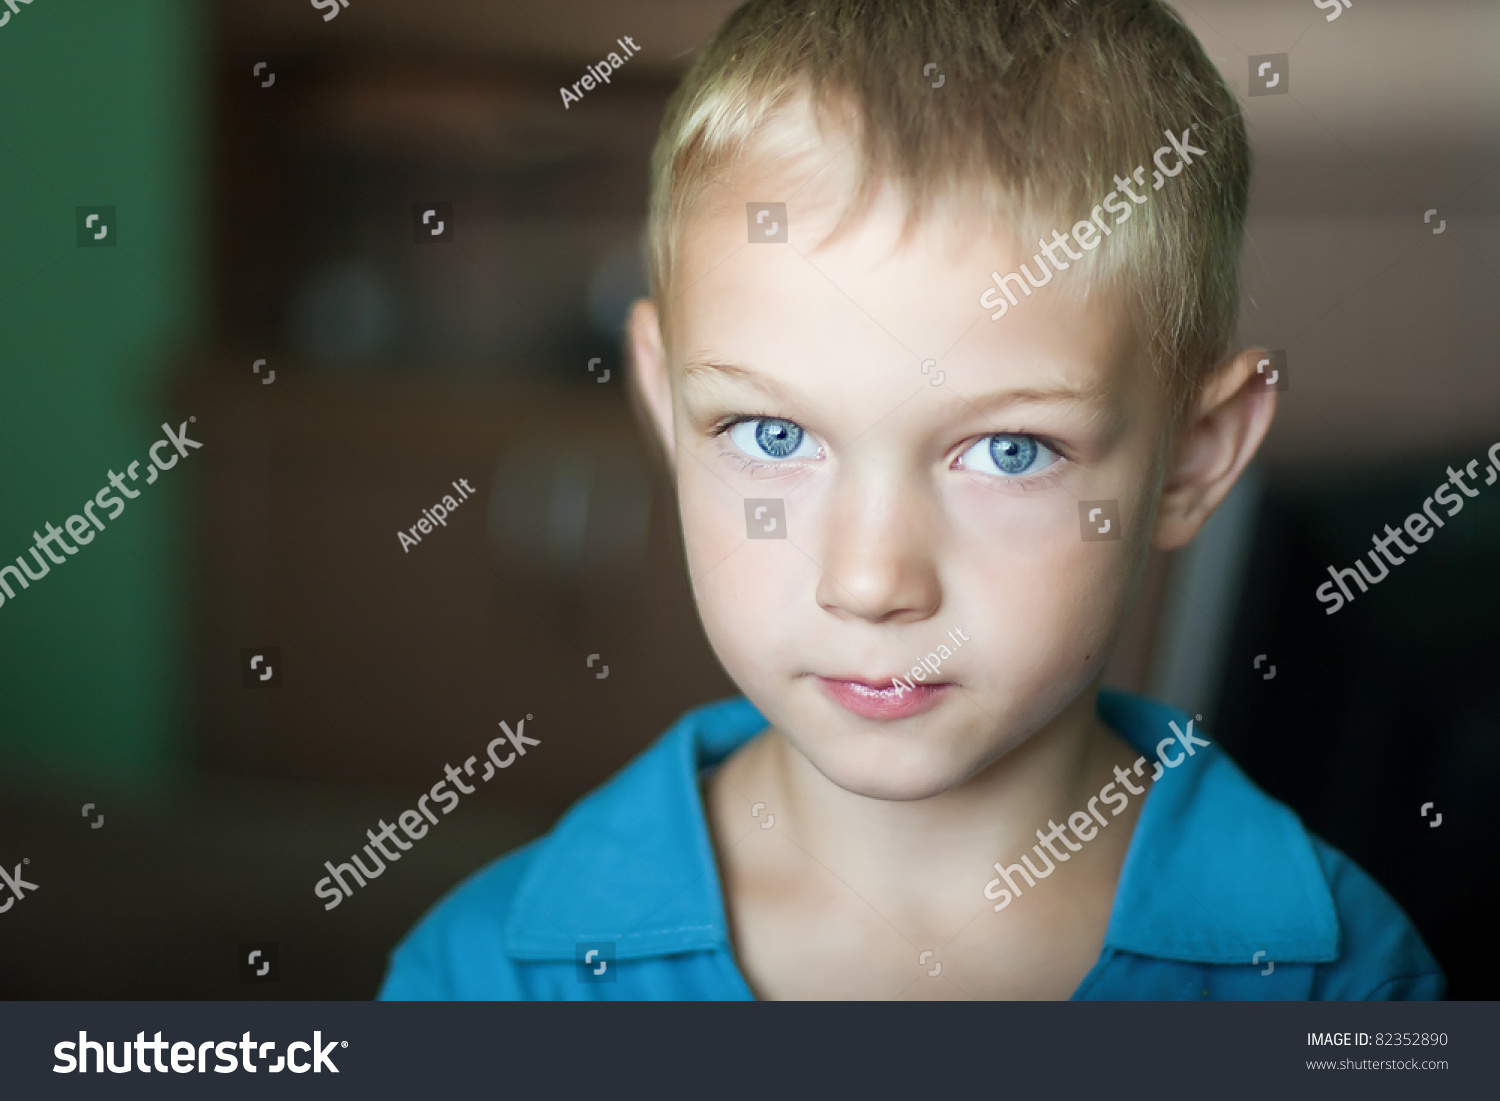 portrait cute kid blue eyes stock photo & image (royalty-free